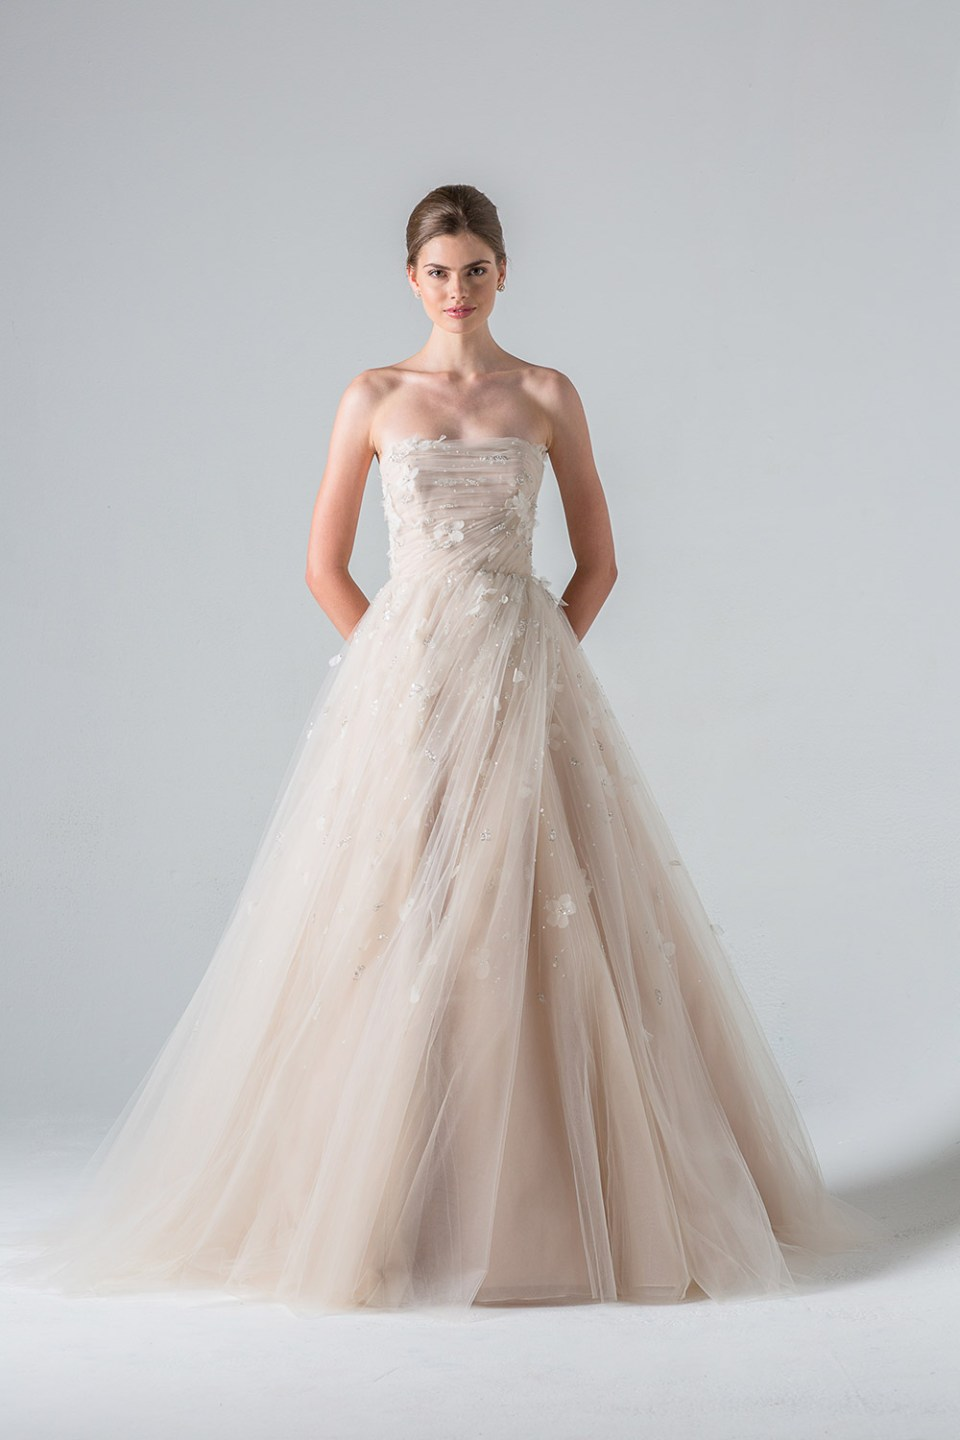 Tuilieries - Anne Barge Couture Spring 2016 Collection. www.theweddingnotebook.com